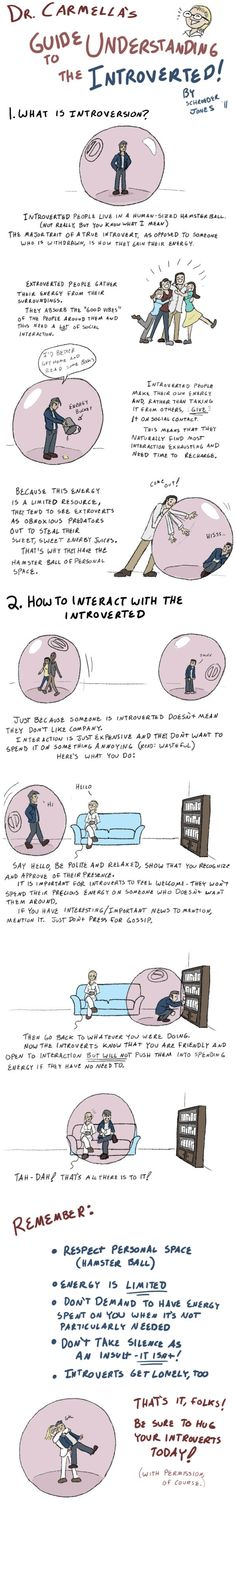 If You Didn't Get It Why You Couldn't Get Along With Introverts Before You Read This, You'll Understand After